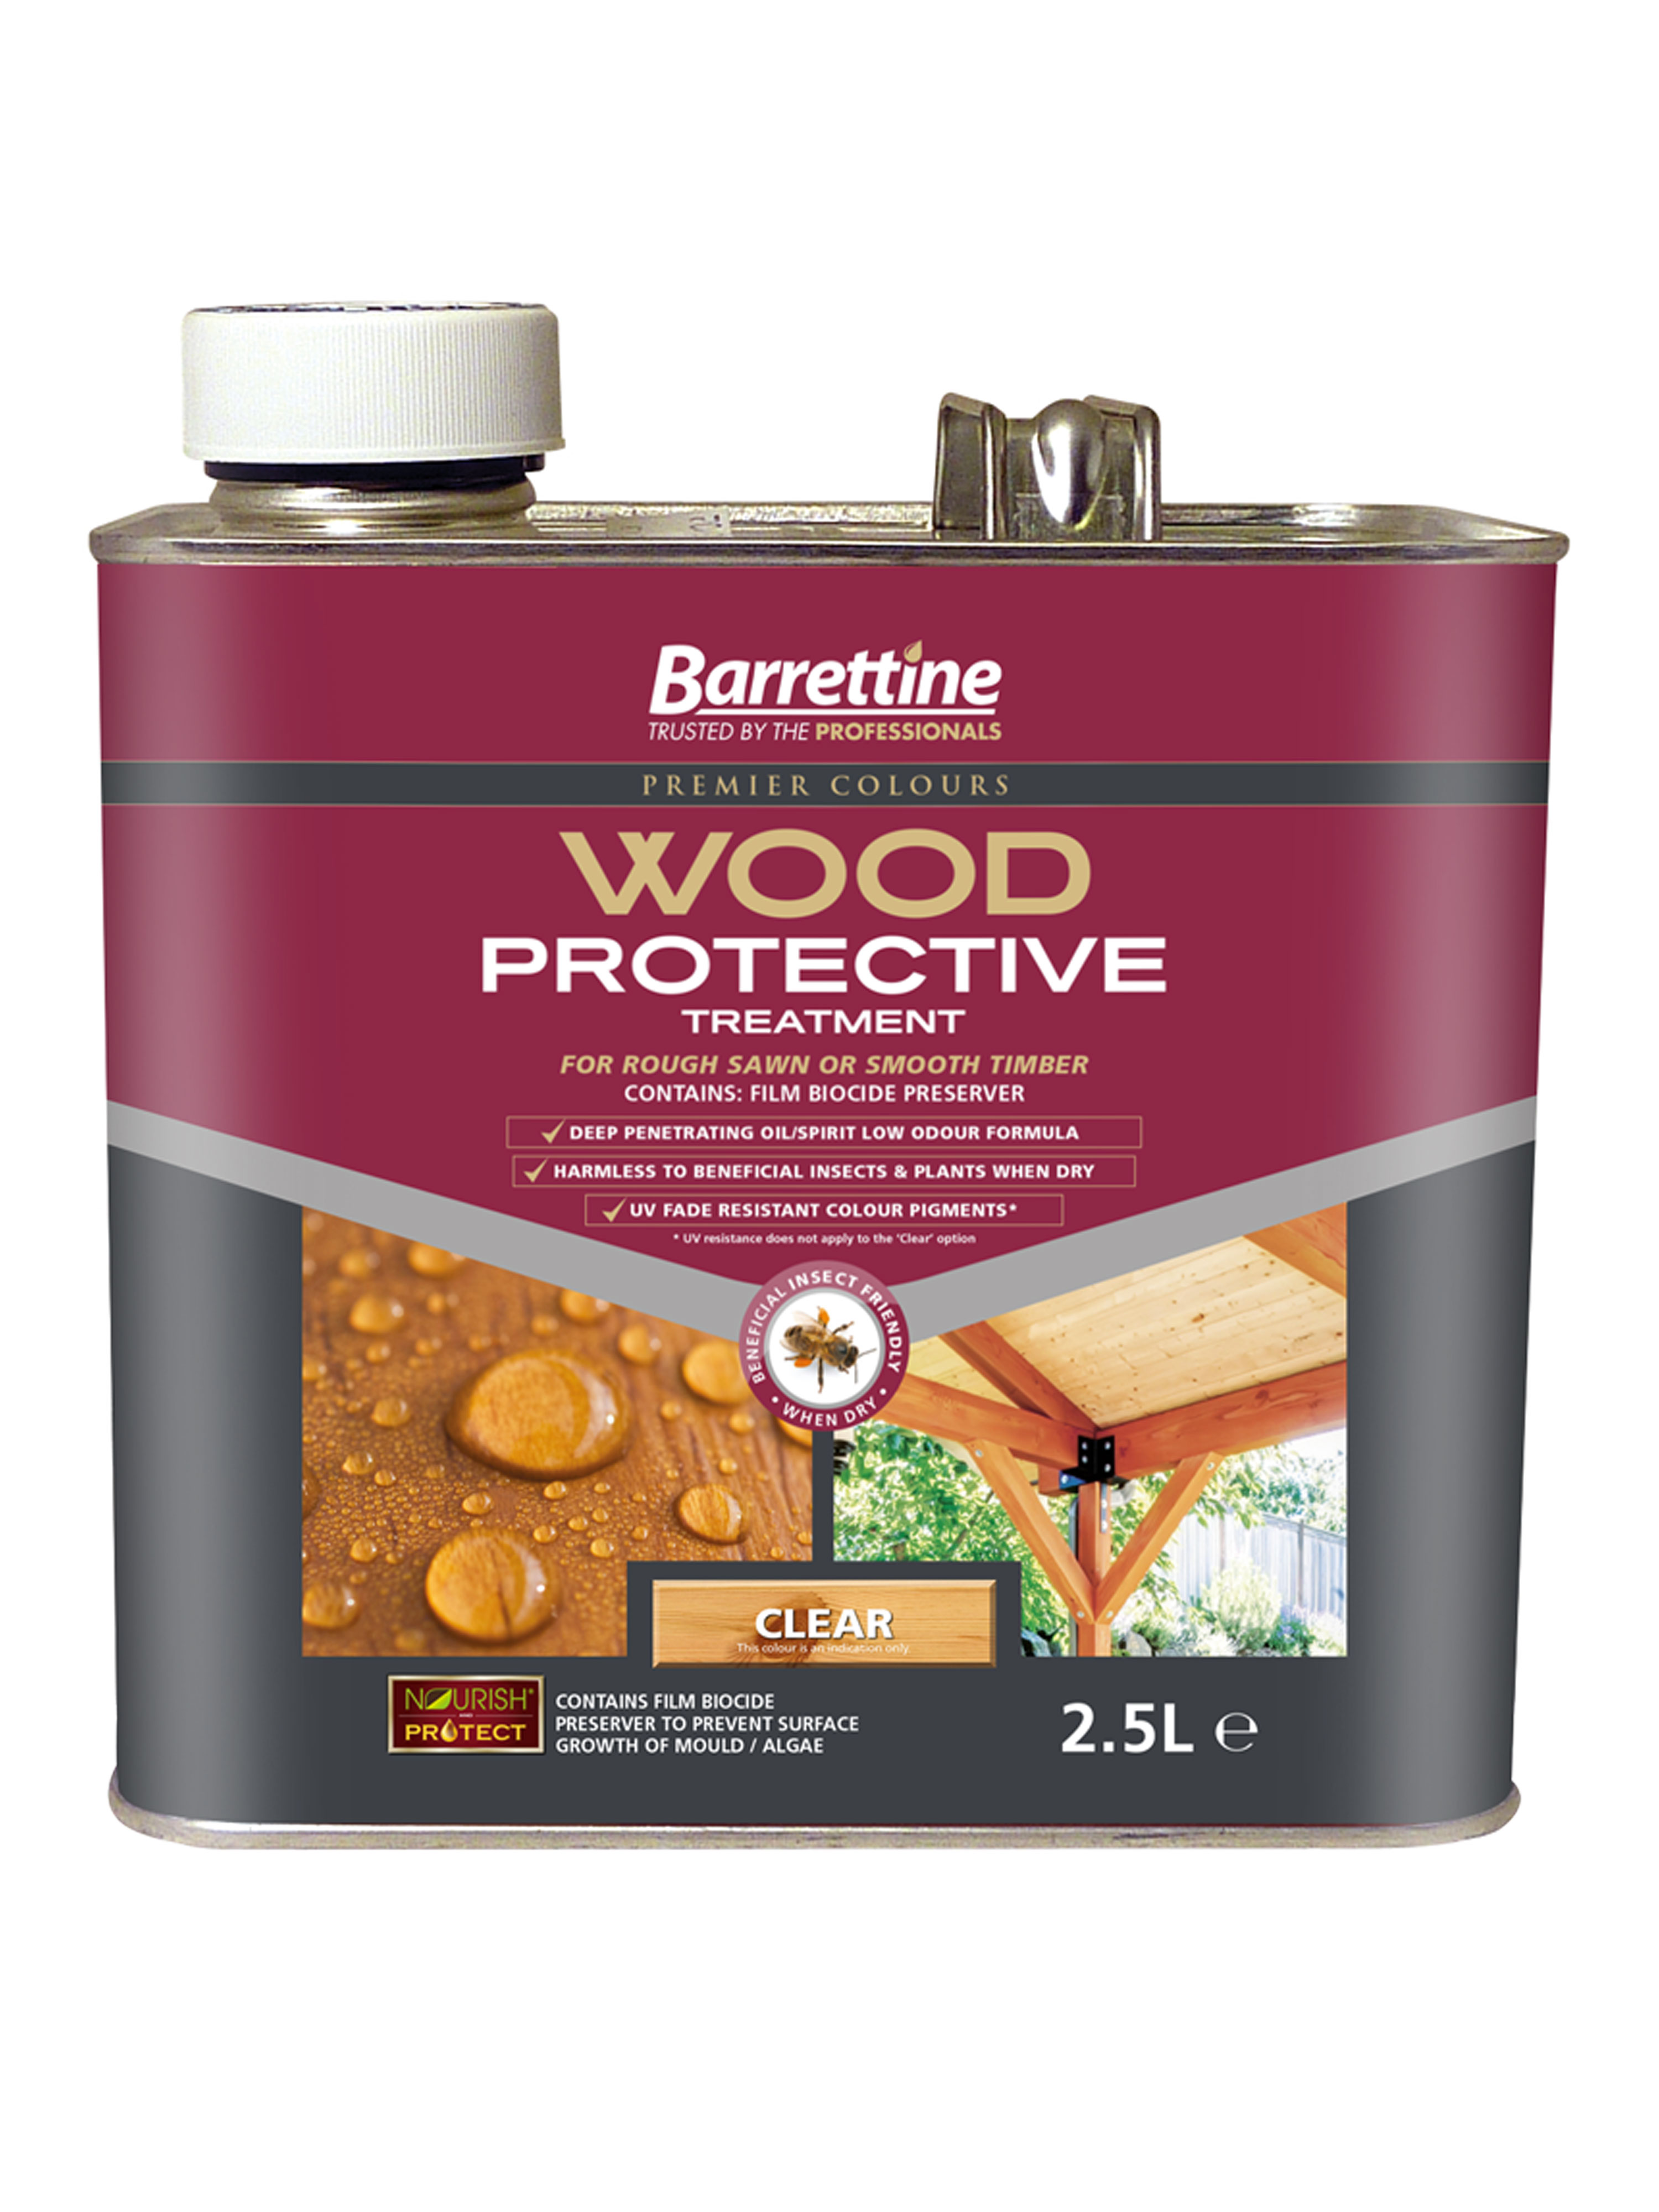 Wood Protective Treatment: Clear 2.5L